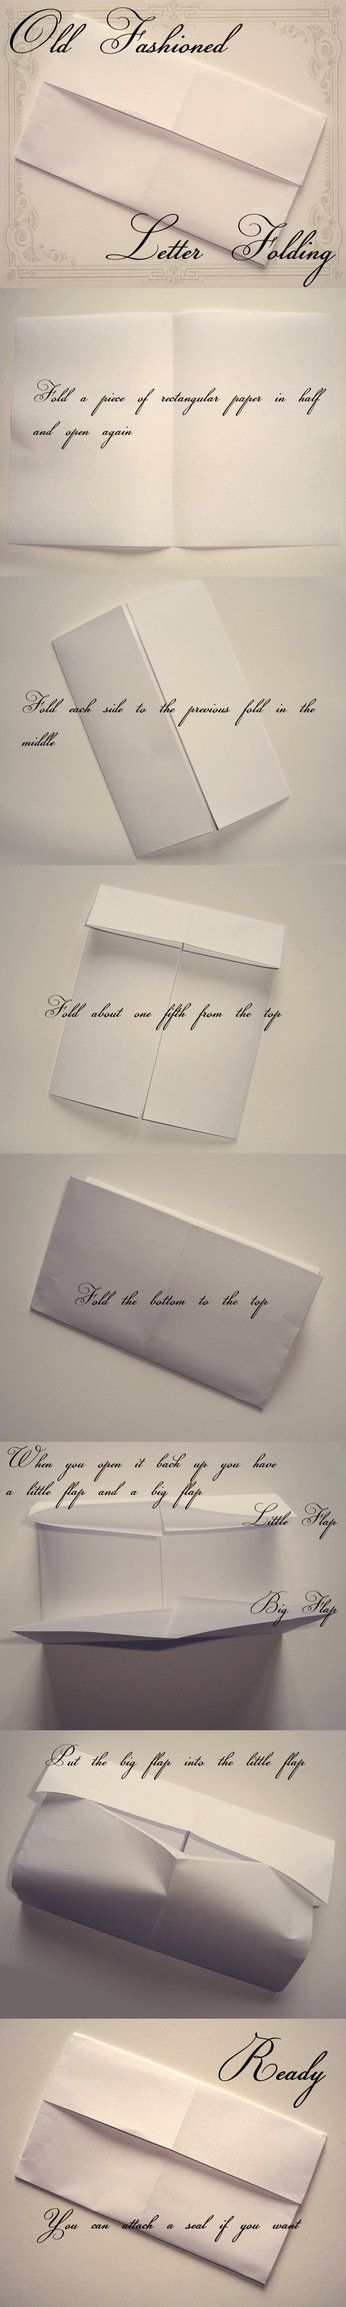 Folding Letter The Old Fashioned Way   Just Like In Jane Austen Films.